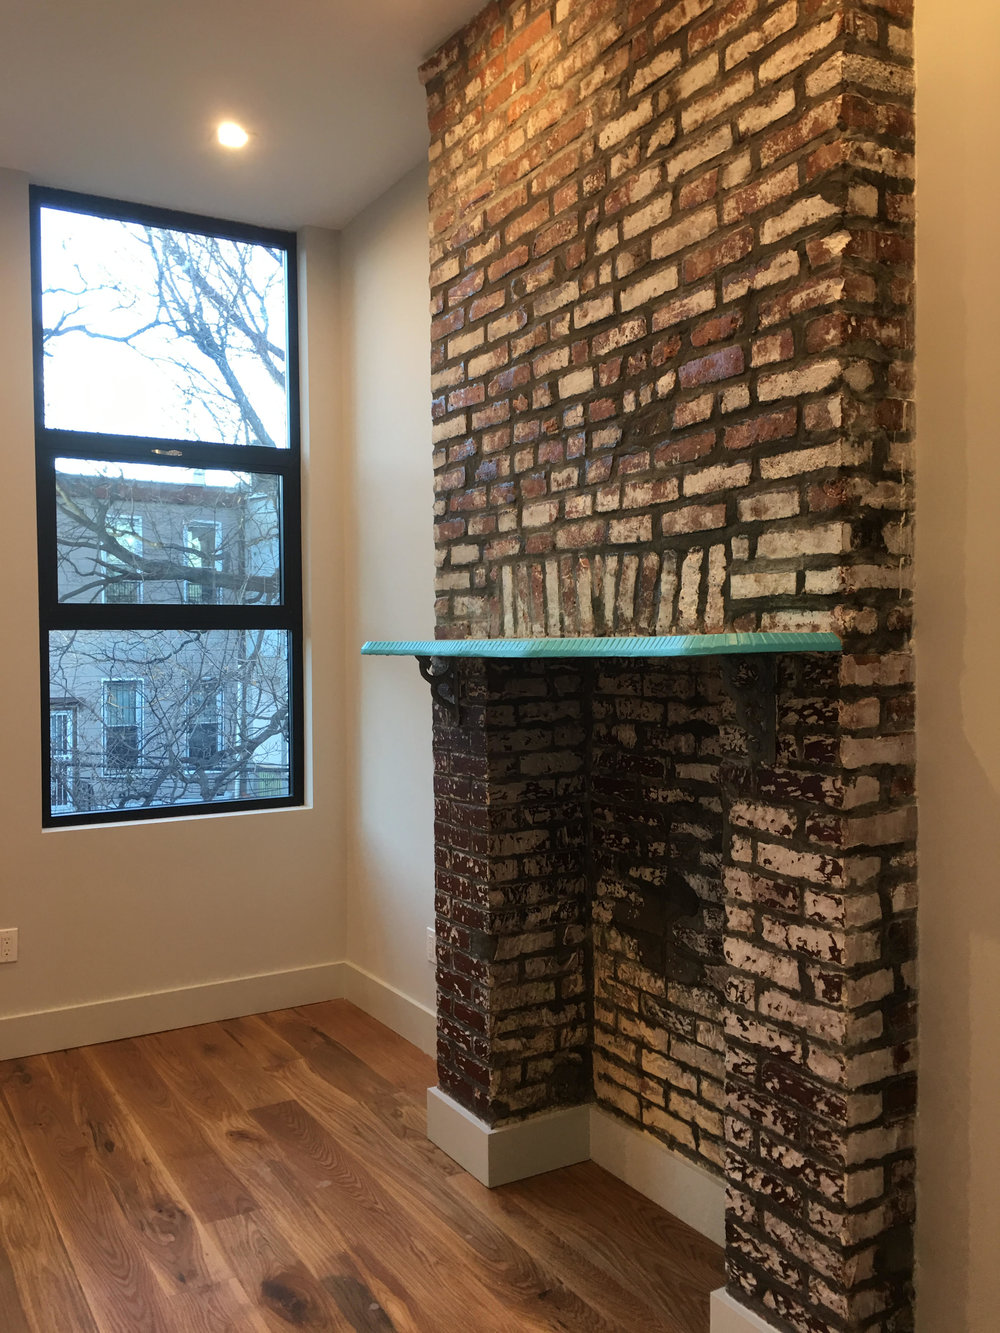 02_1049 HALSEY STREET BEDROOM FIREPLACE.jpg